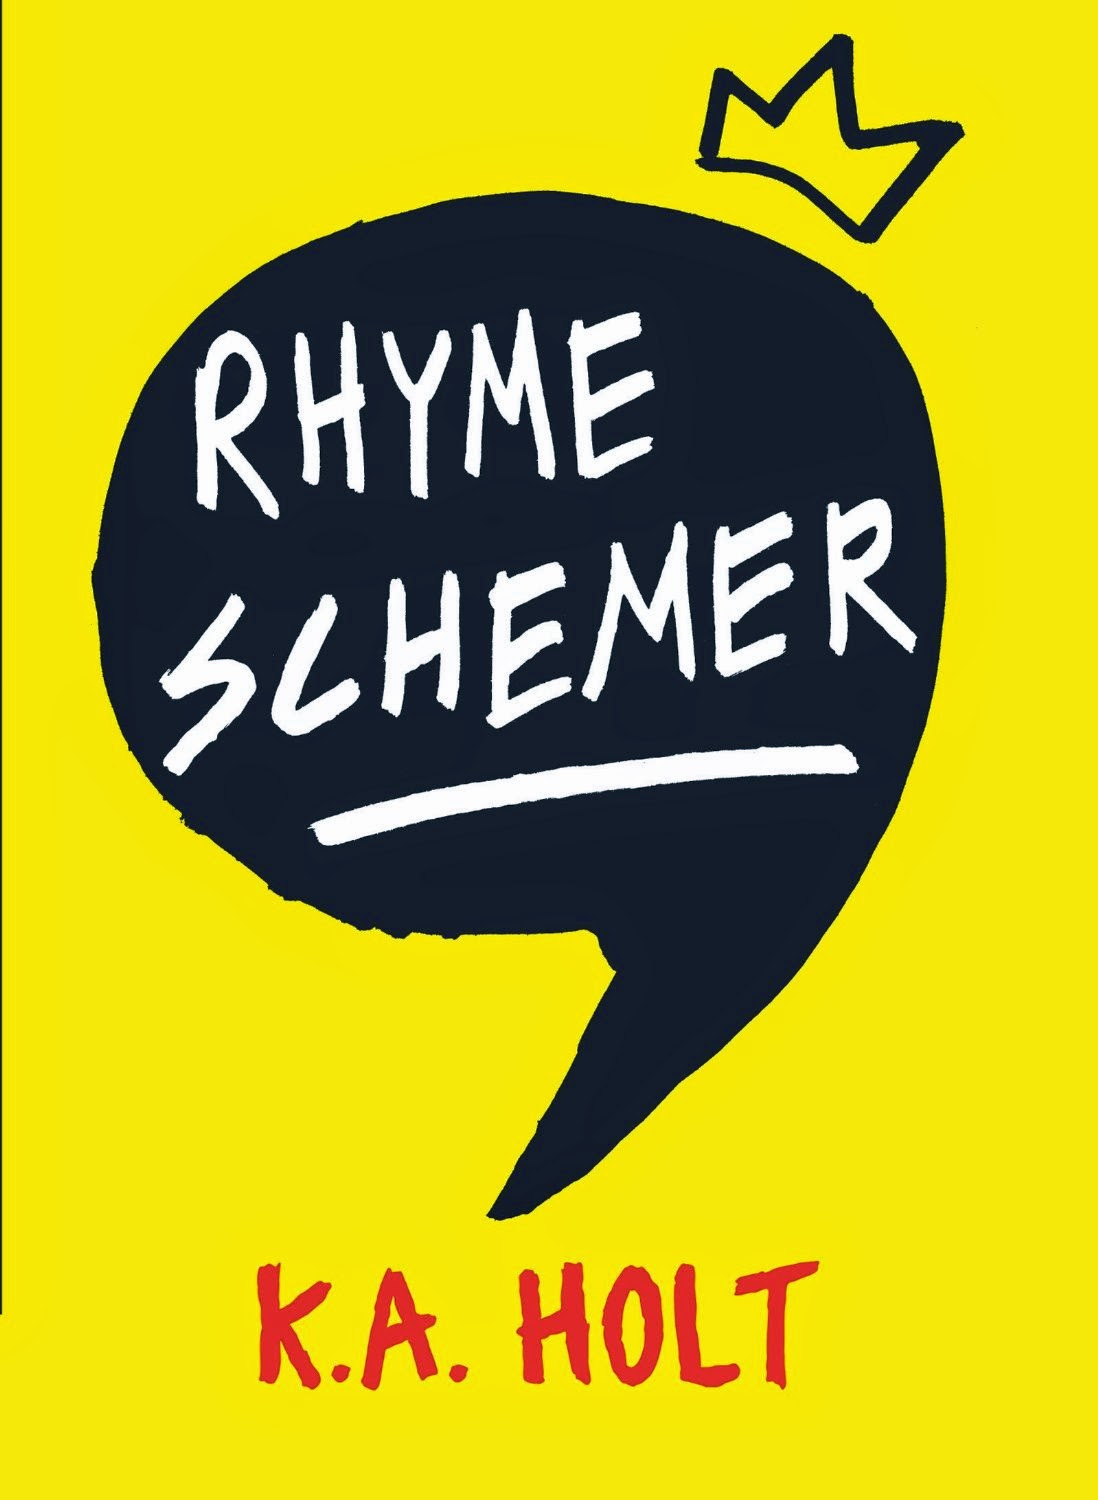 Rhyme Schemer by K.A. Holt